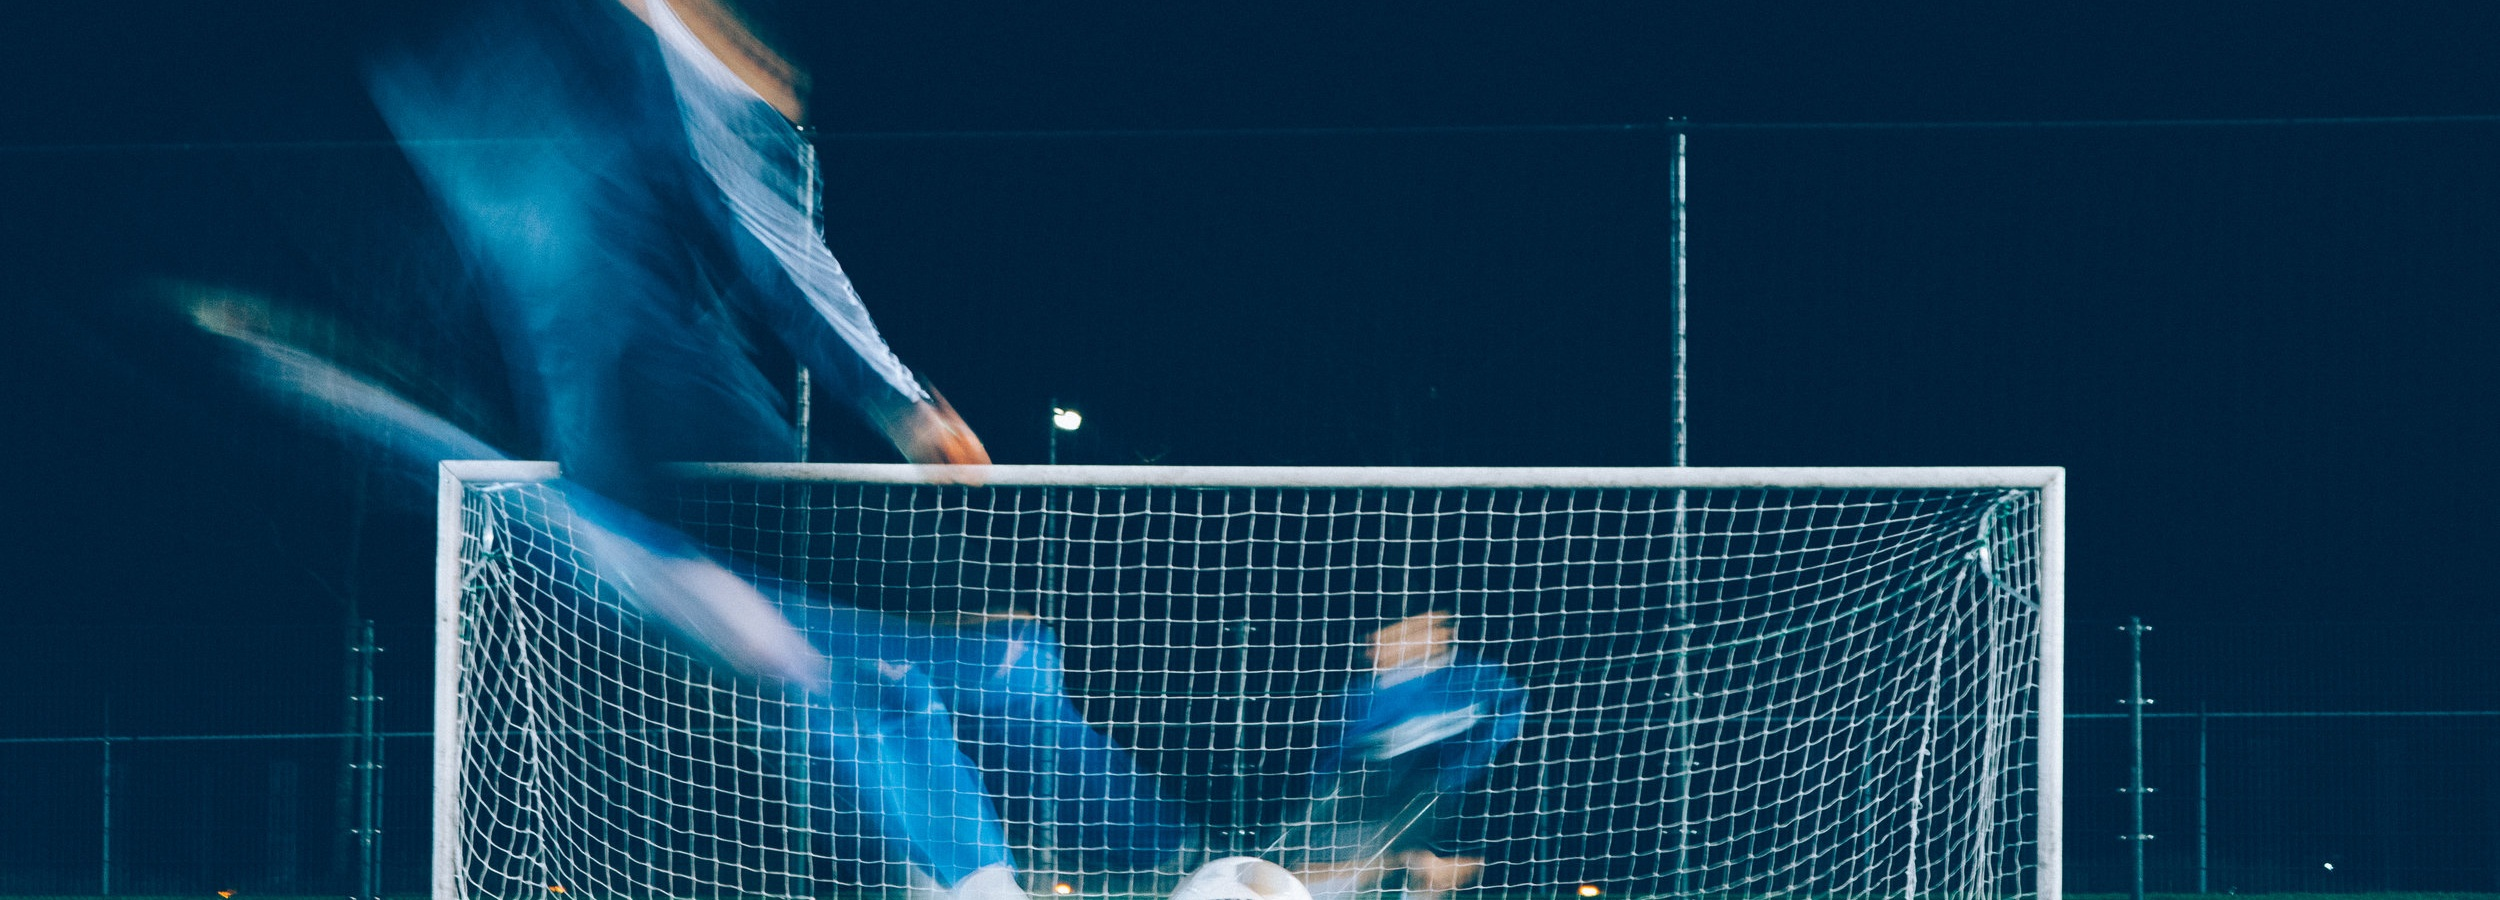 Soccer-Ball-into-Goalpost.jpg